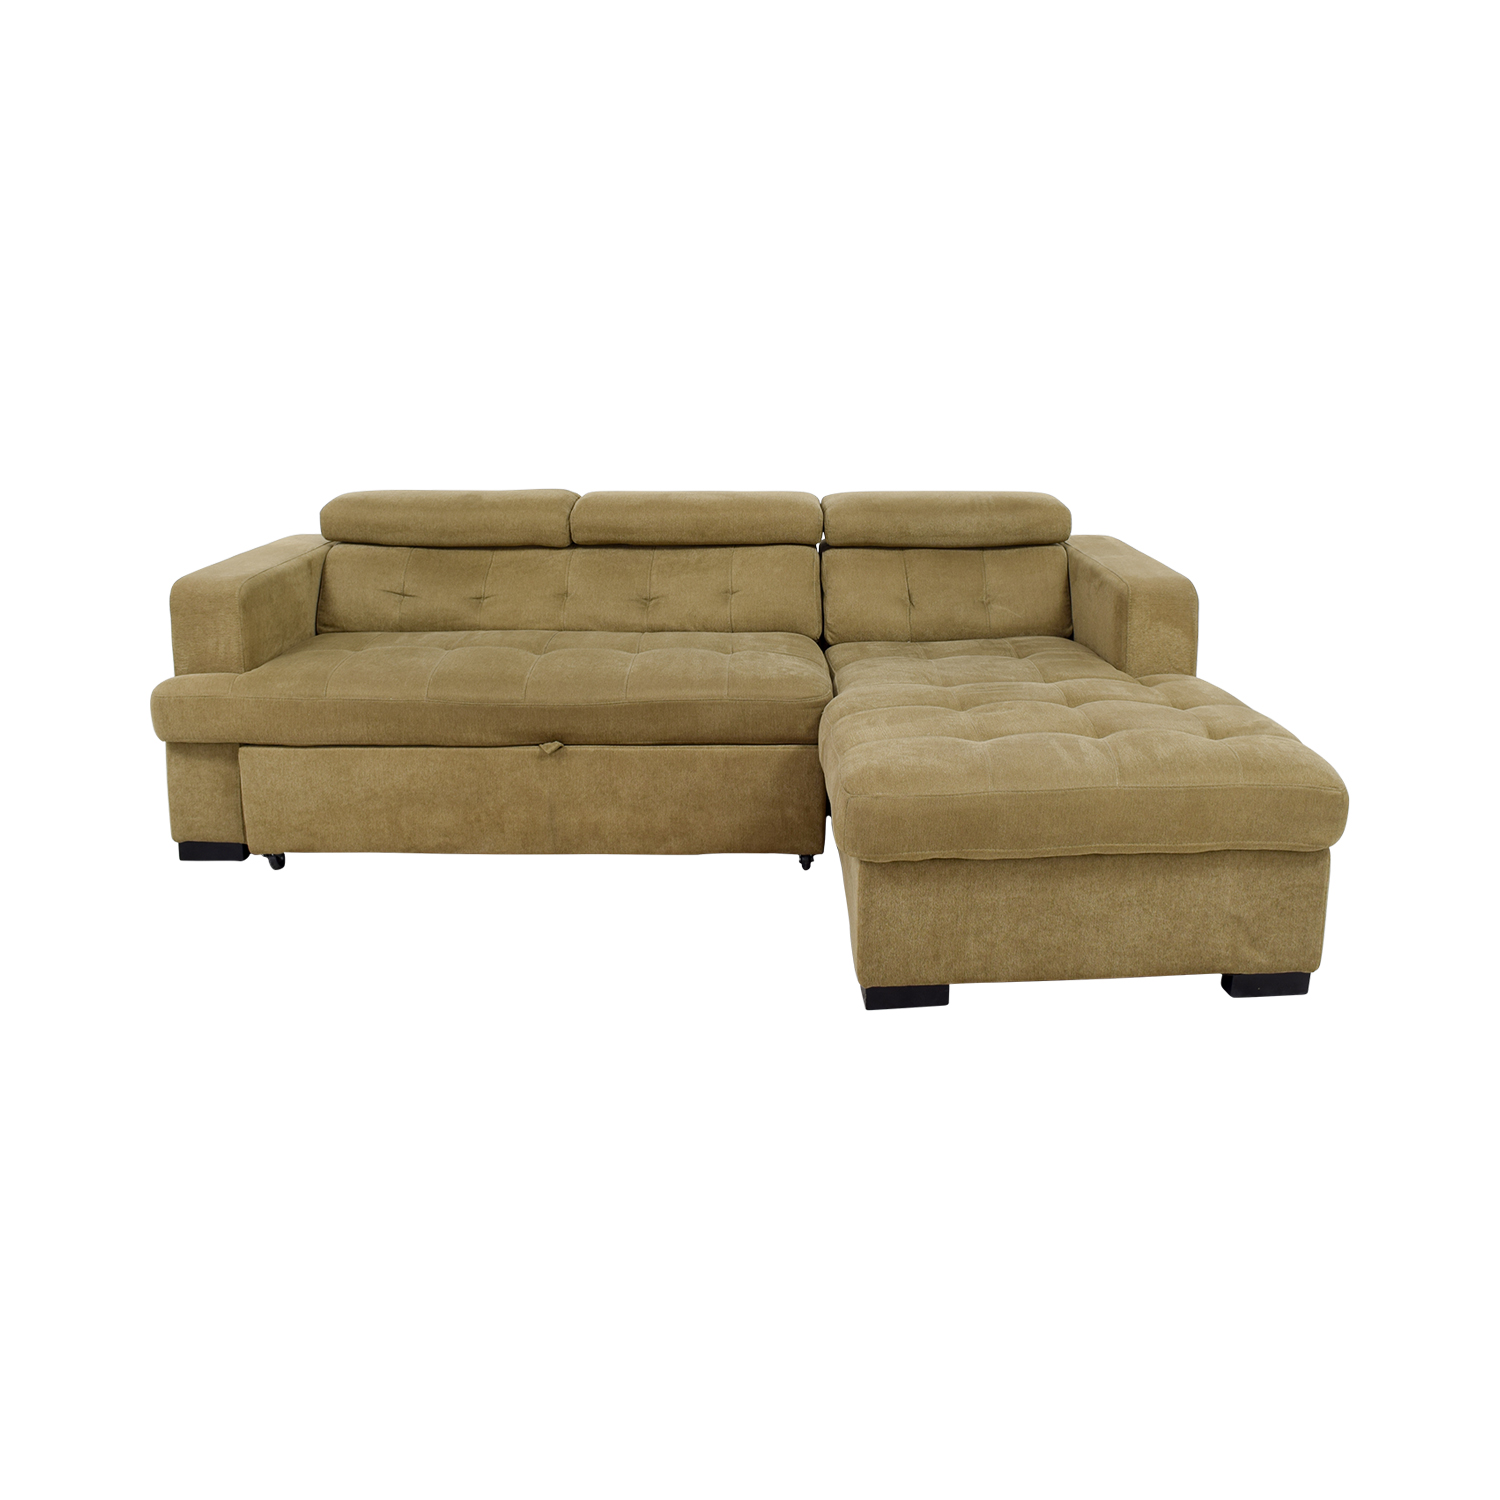 Bobs Furniture Bobs Furniture Gold Chaise Sectional Sleeper Sofa dimensions